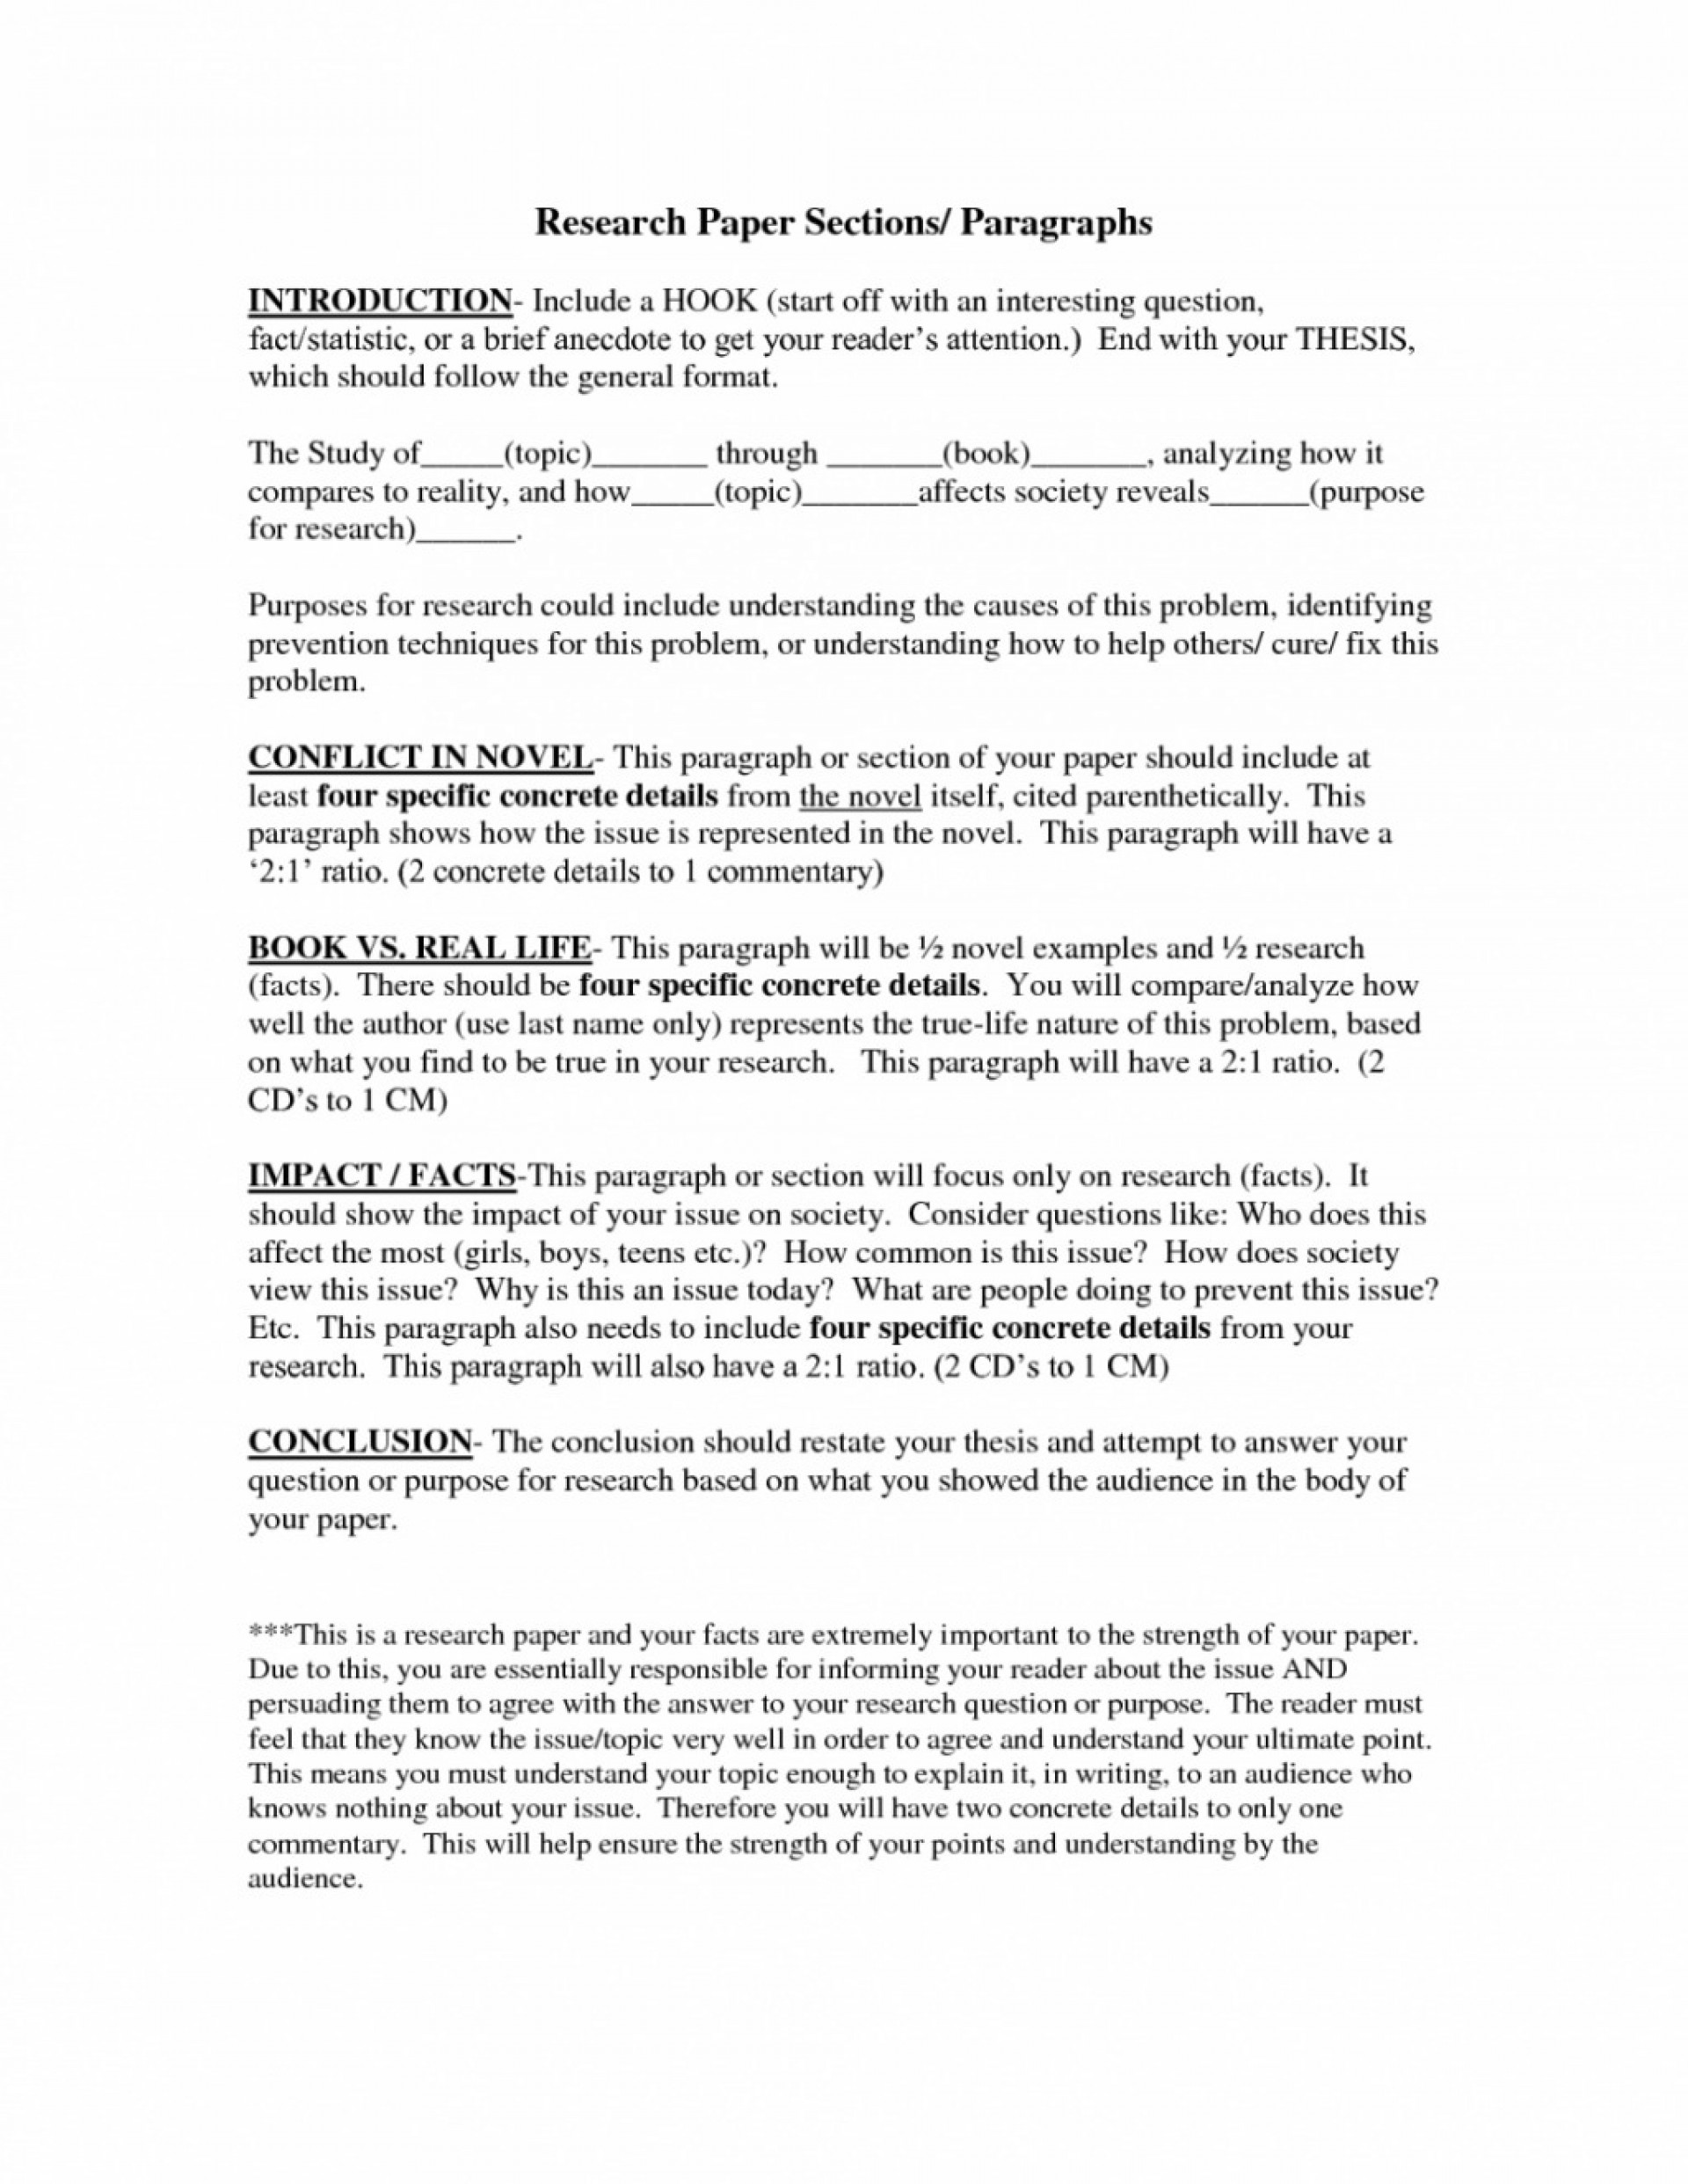 010 Conclusion Paragraph Example For Research Paper Examples And Within Top Format 1920